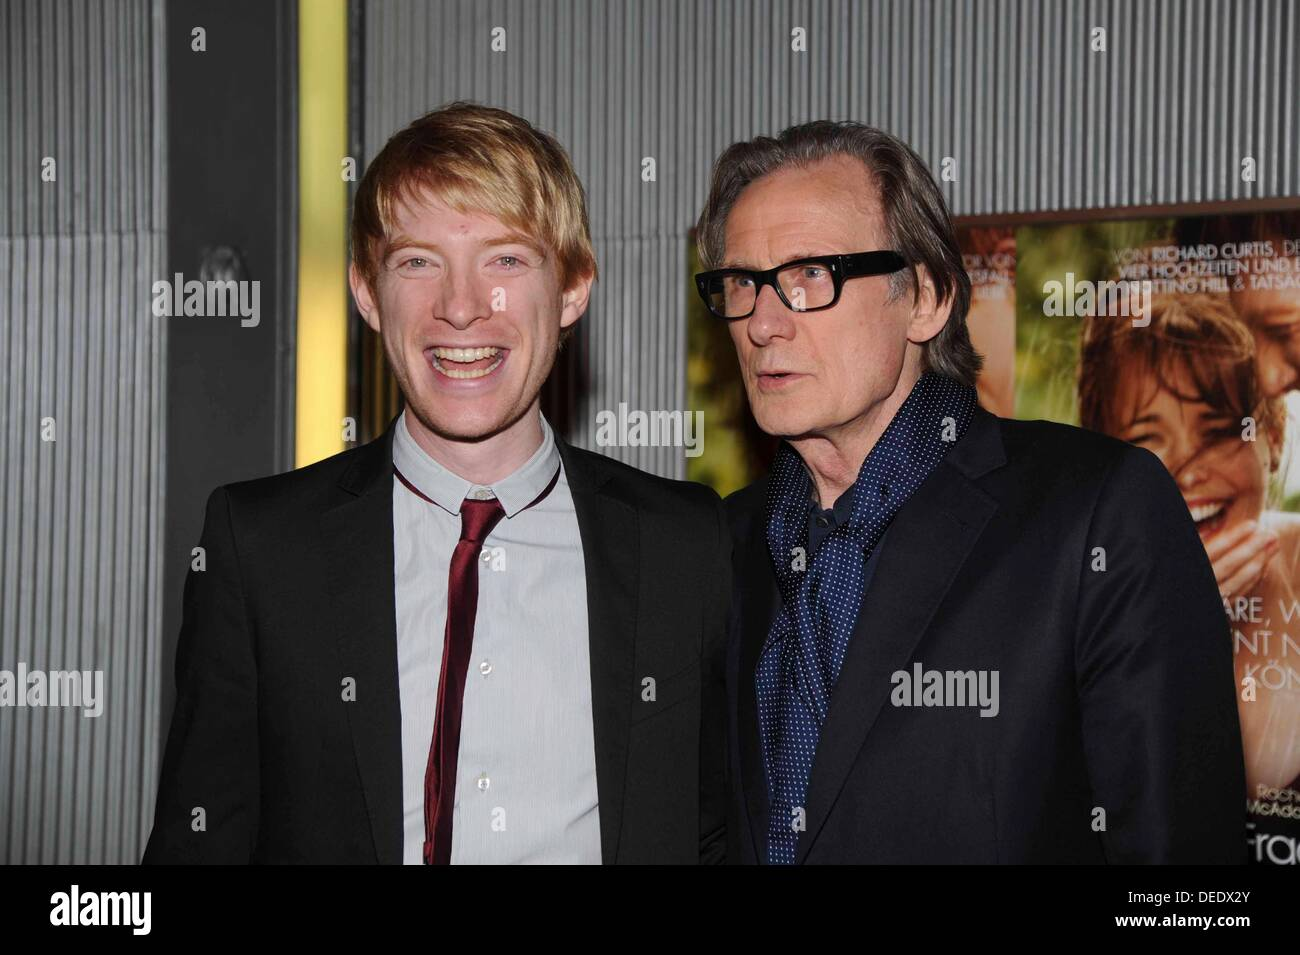 Berlin, Germany. 16th Sep, 2013. Domhnall Gleeson and Bill Nighy during the photo call for the premiere of the movie - all a question of time - at Astor Film Lounge in Berlin./picture alliance © dpa picture alliance/Alamy Live News - Stock Image